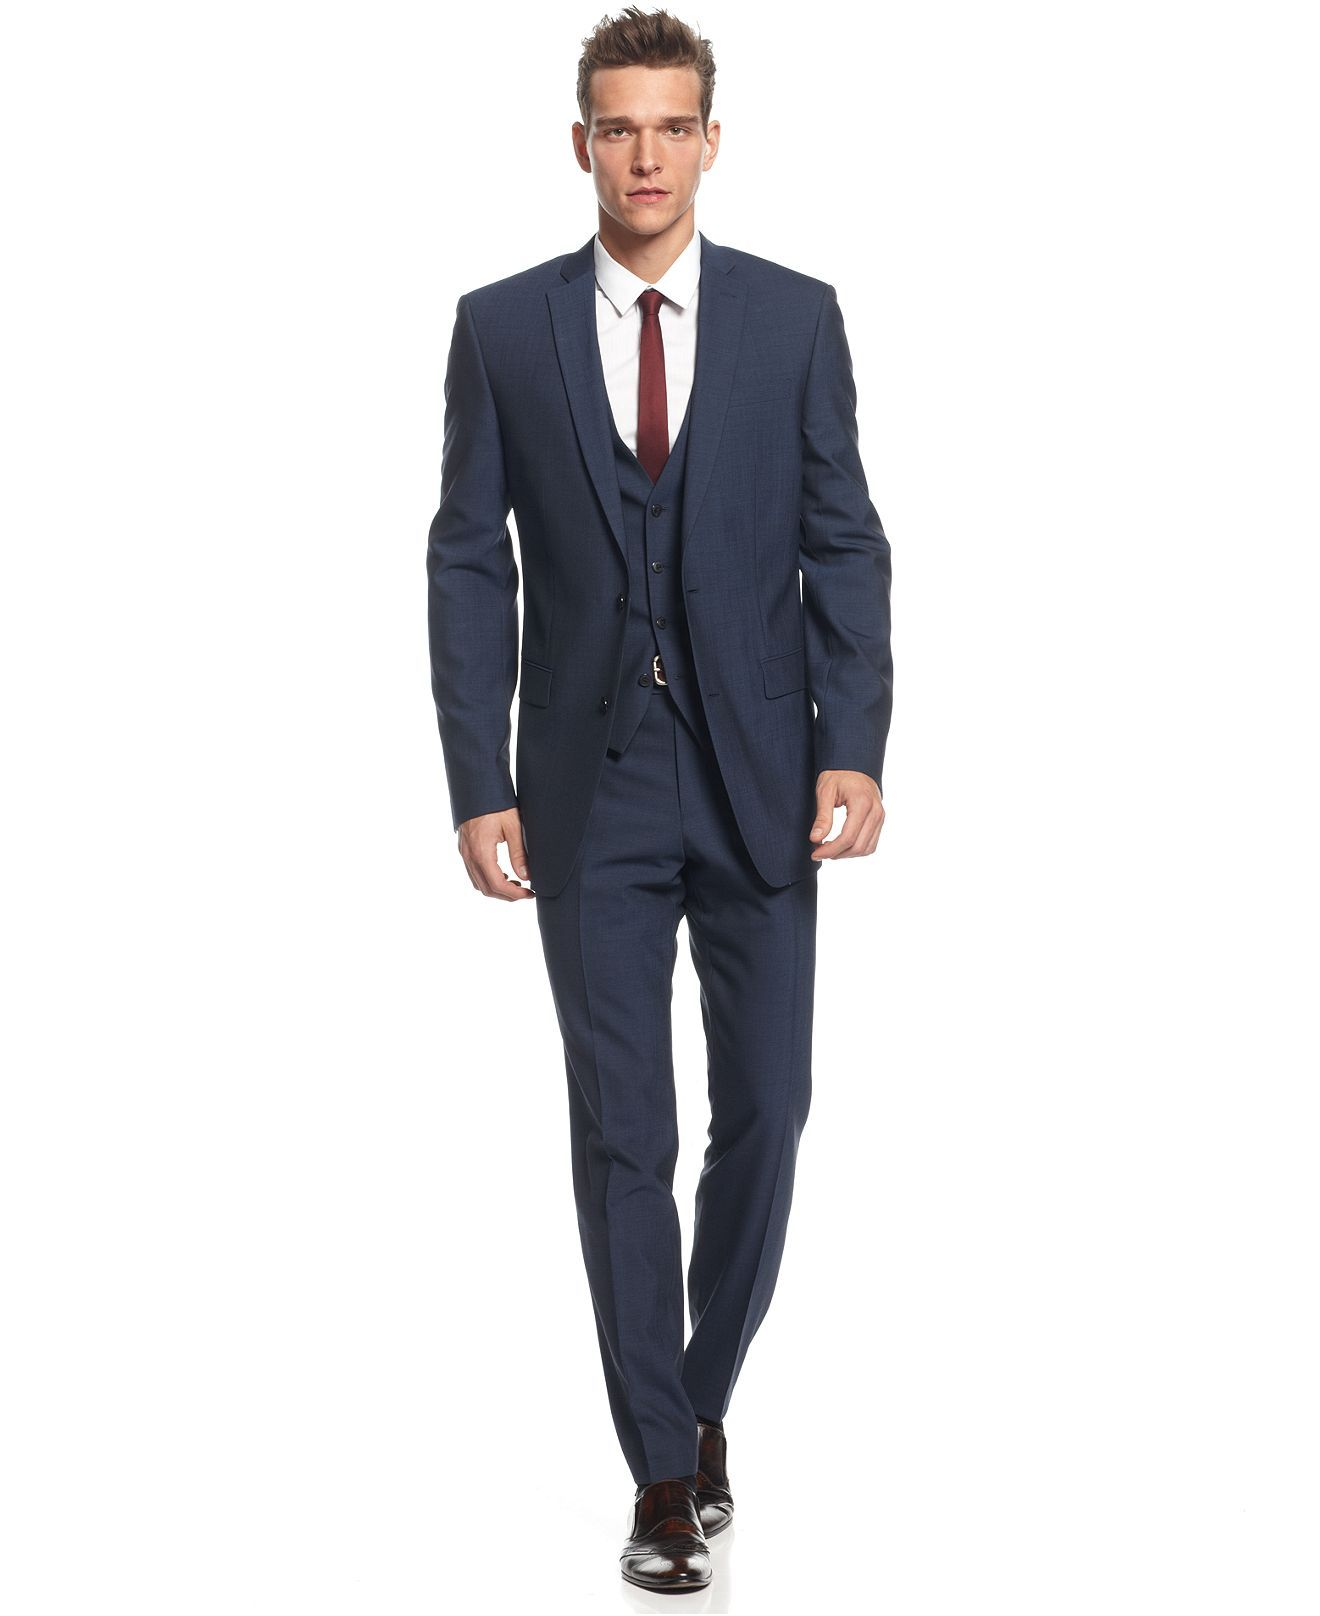 52a7a81c89f015 Bar III Suit Separates, Midnight Blue Slim Fit - Mens Suits & Suit  Separates - Macy's